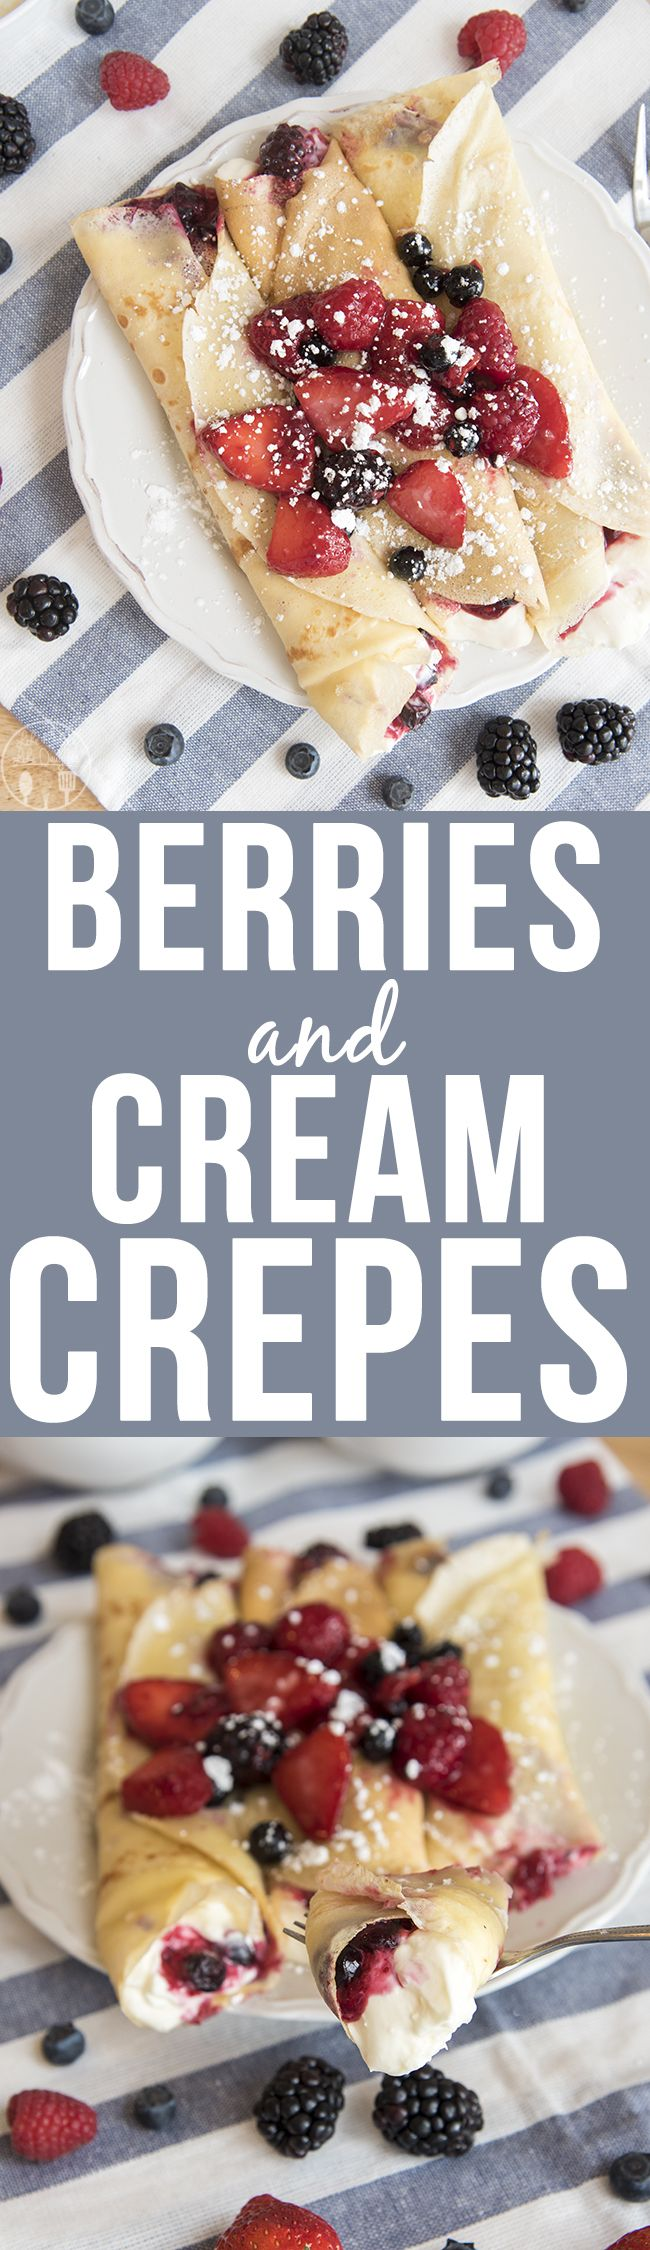 Berries and Cream Crepes - These amazing crepes are filled with a cheesecake like filling, and sweet juicy berries for a decadent breakfast or dessert